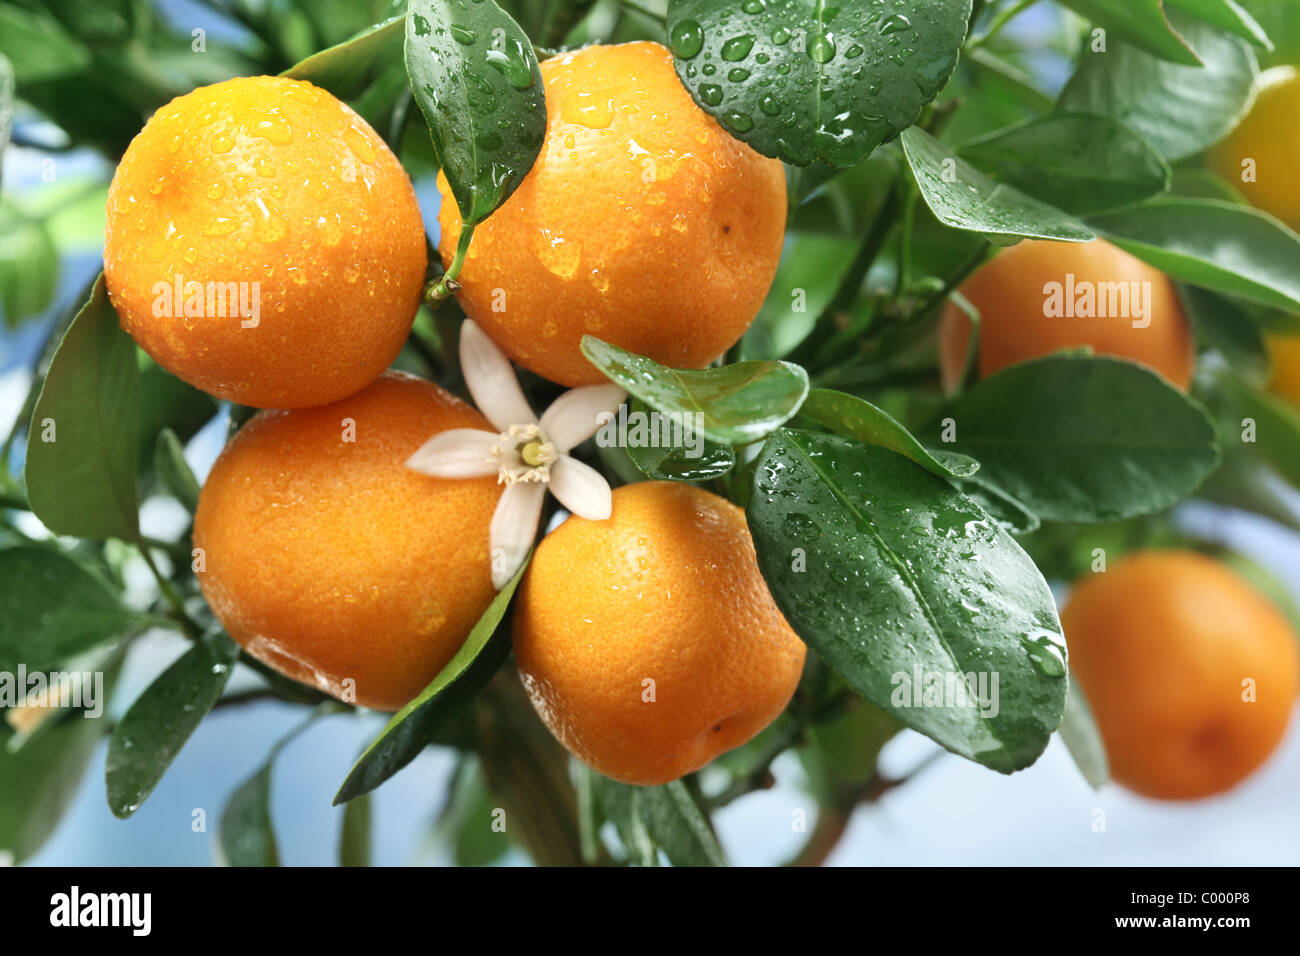 Ripe tangerines on a tree branch. Blue sky on the background. Stock Photo